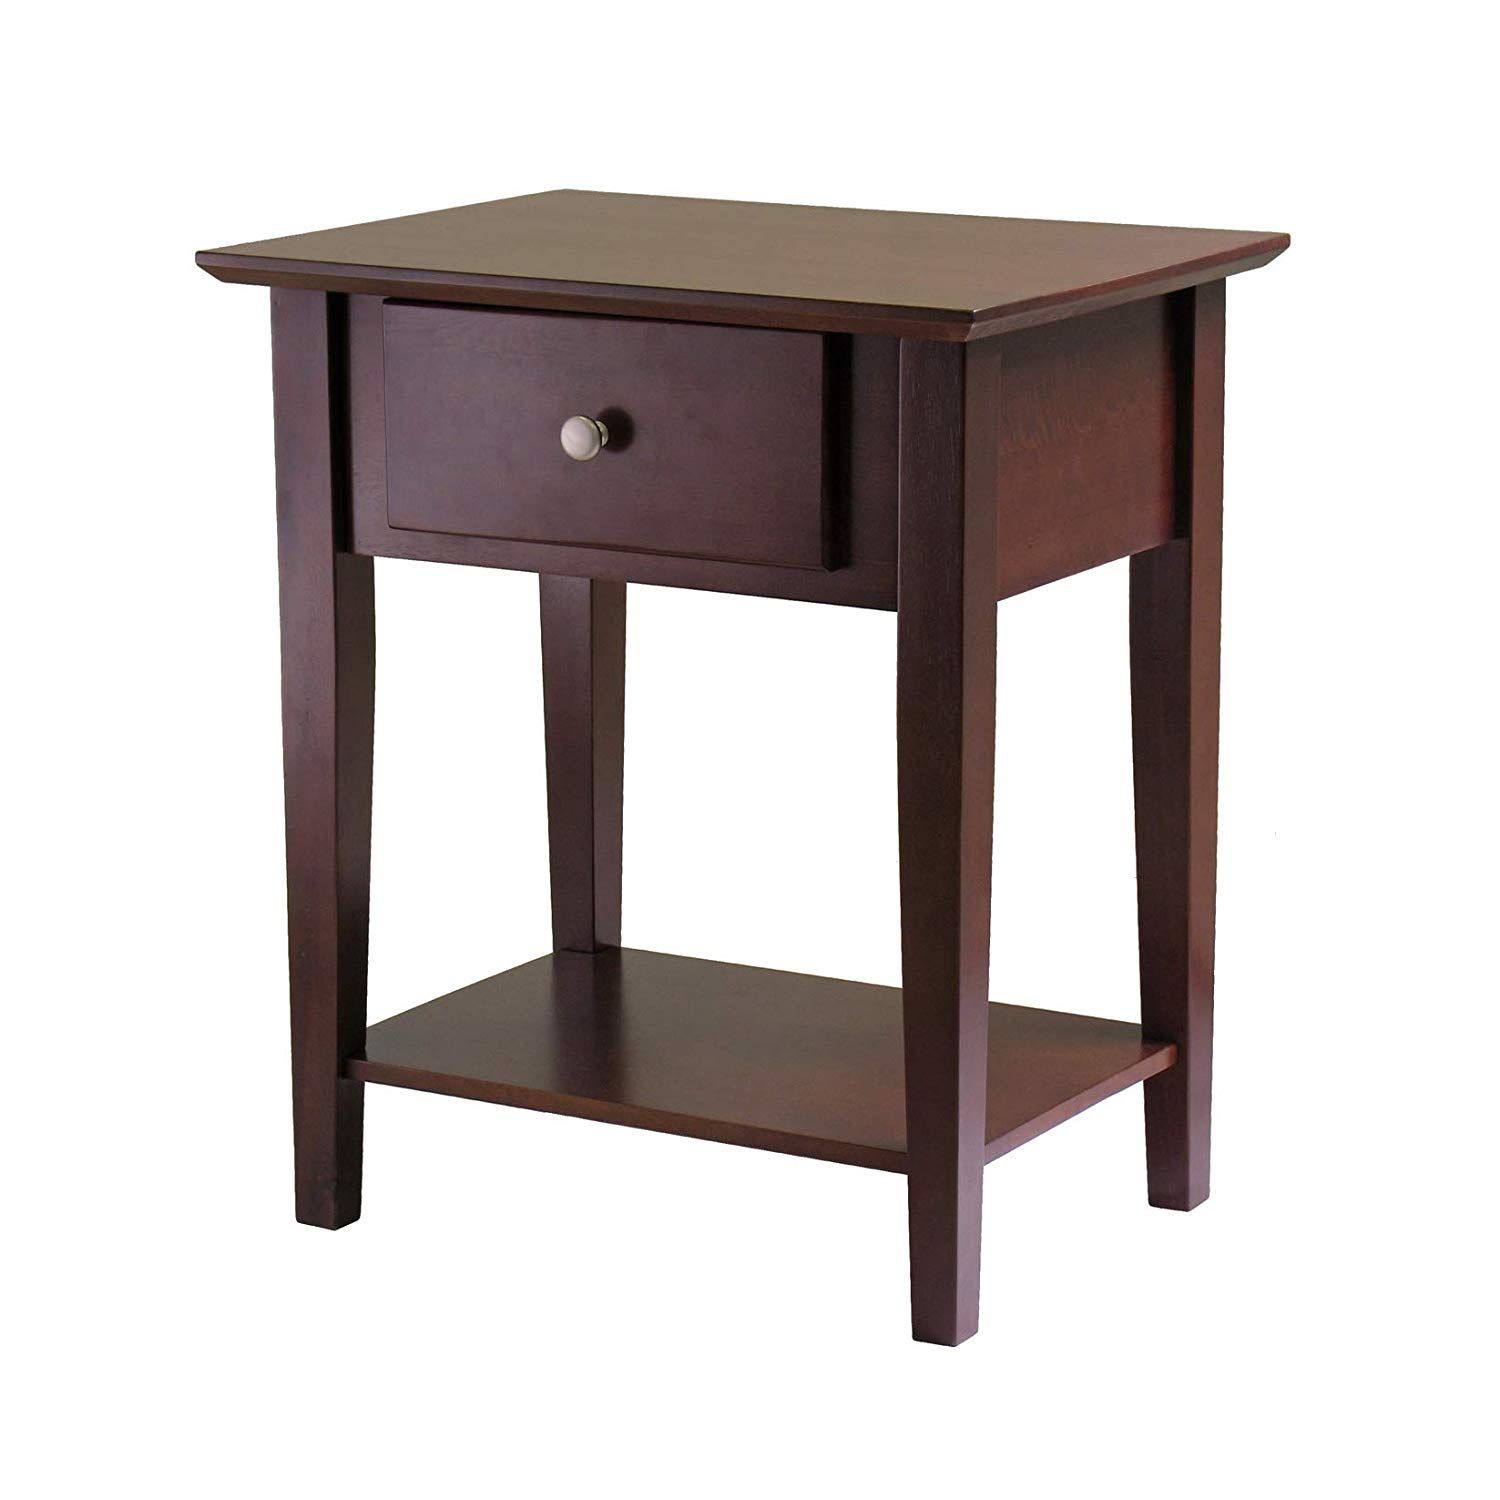 winsome wood shaker accent table antique walnut kitchen dining pottery barn rattan coffee waterproof cover for garden and chairs reclaimed trestle target tufted chair solid farm